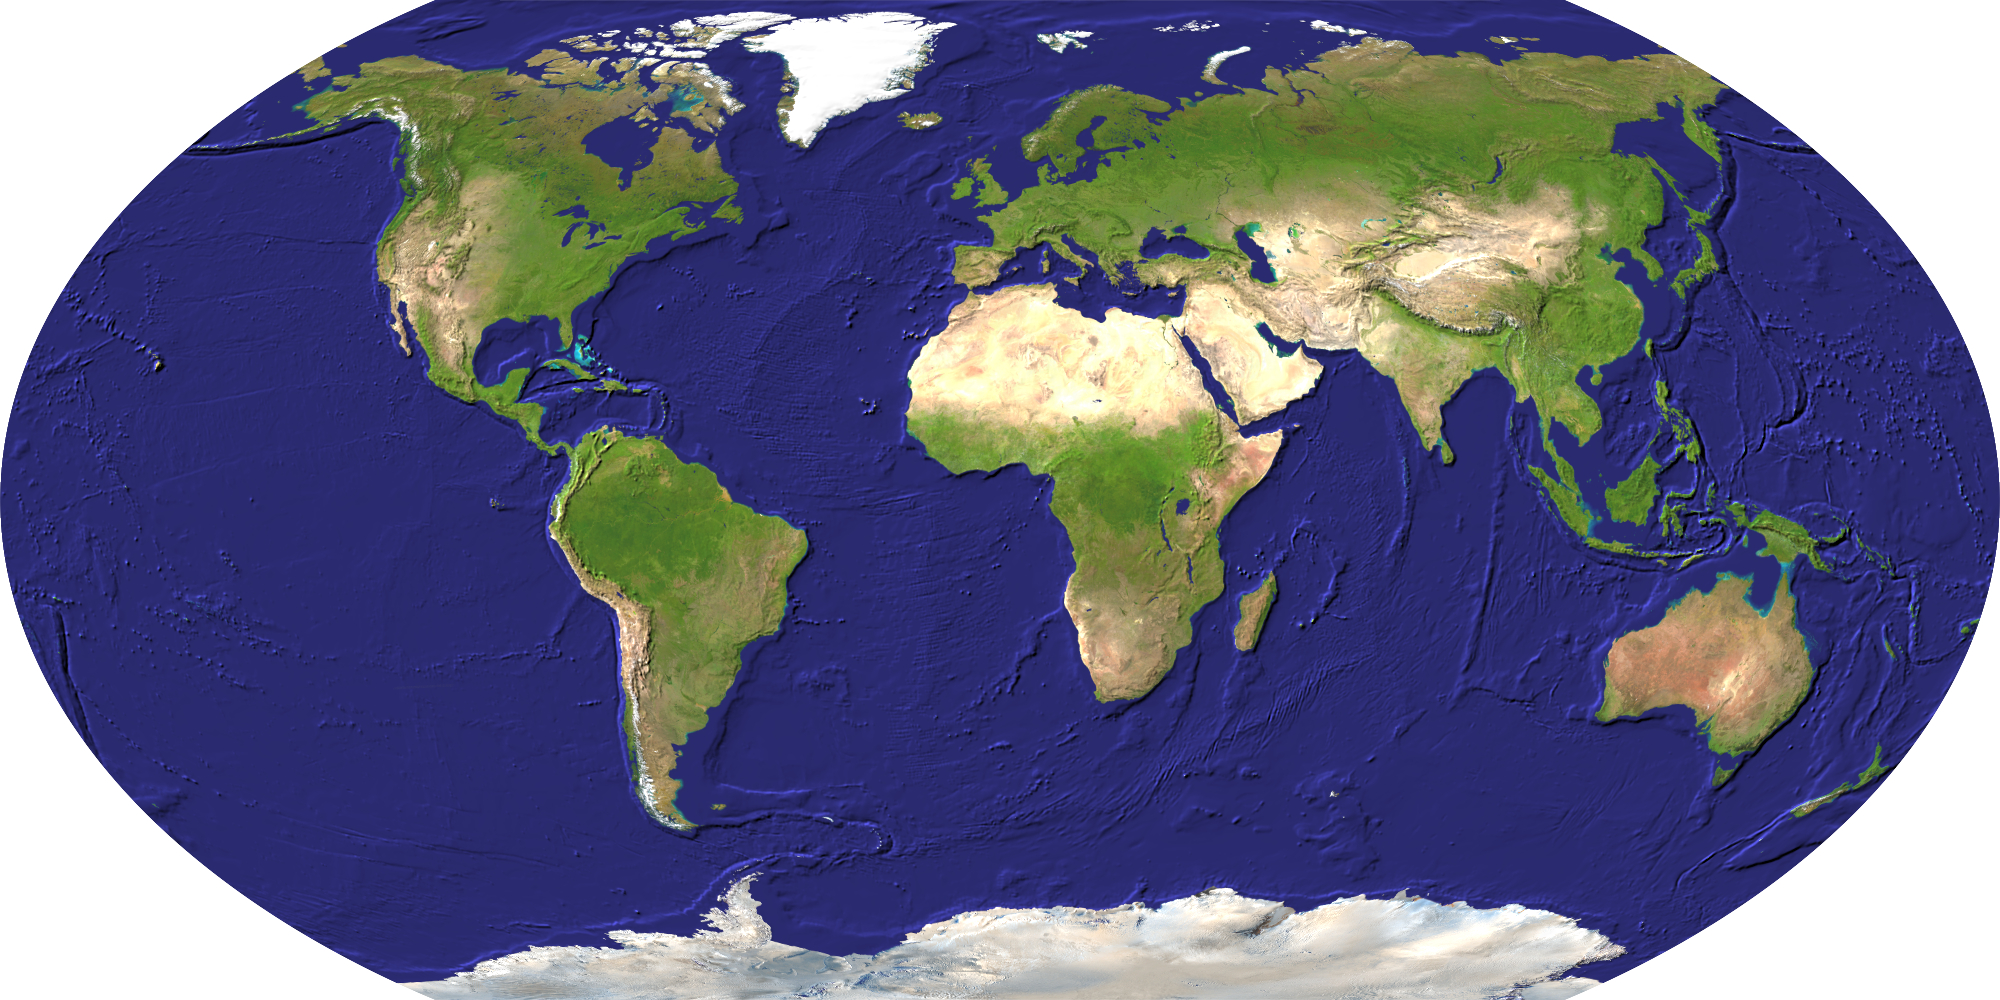 http://www.primap.com/Maps/en/World/Maps-world-map-2000.jpg